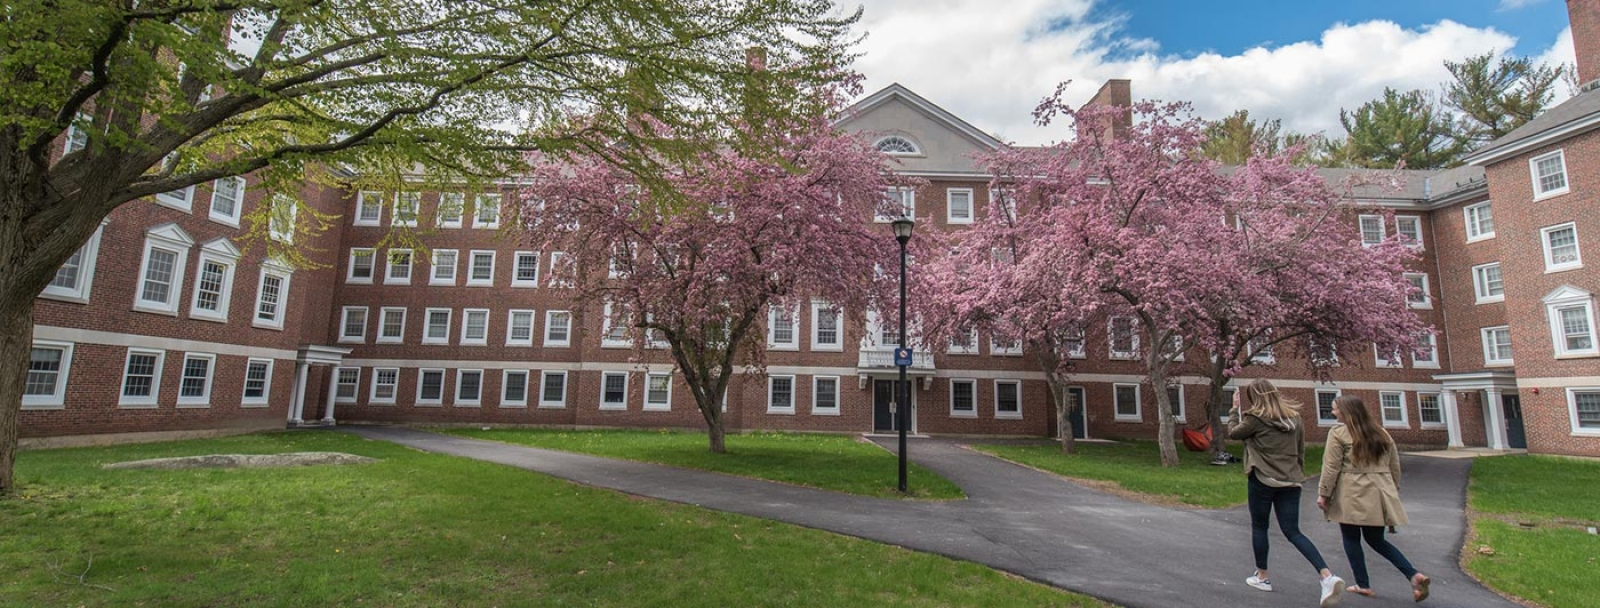 unh campus in the spring